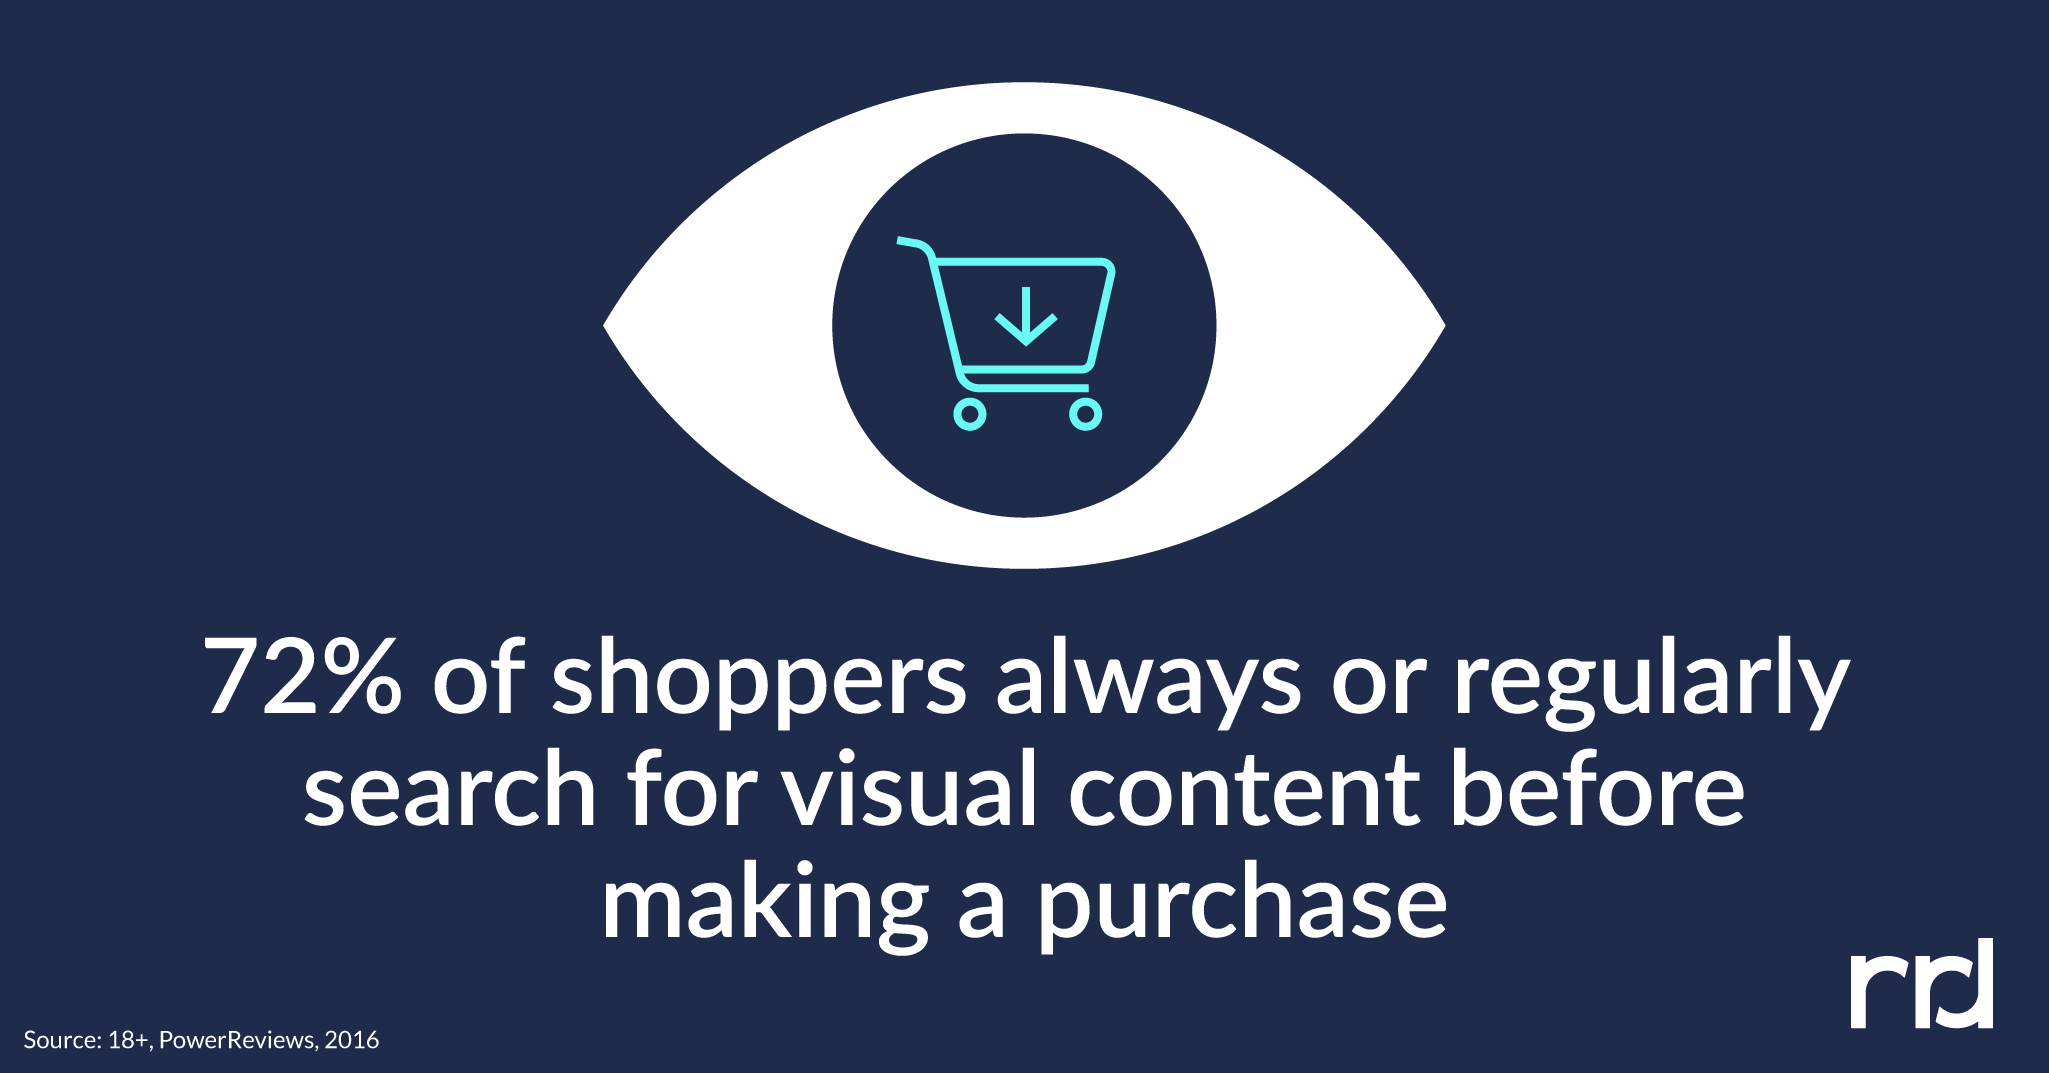 Shoppers search for visual content before making a purchase